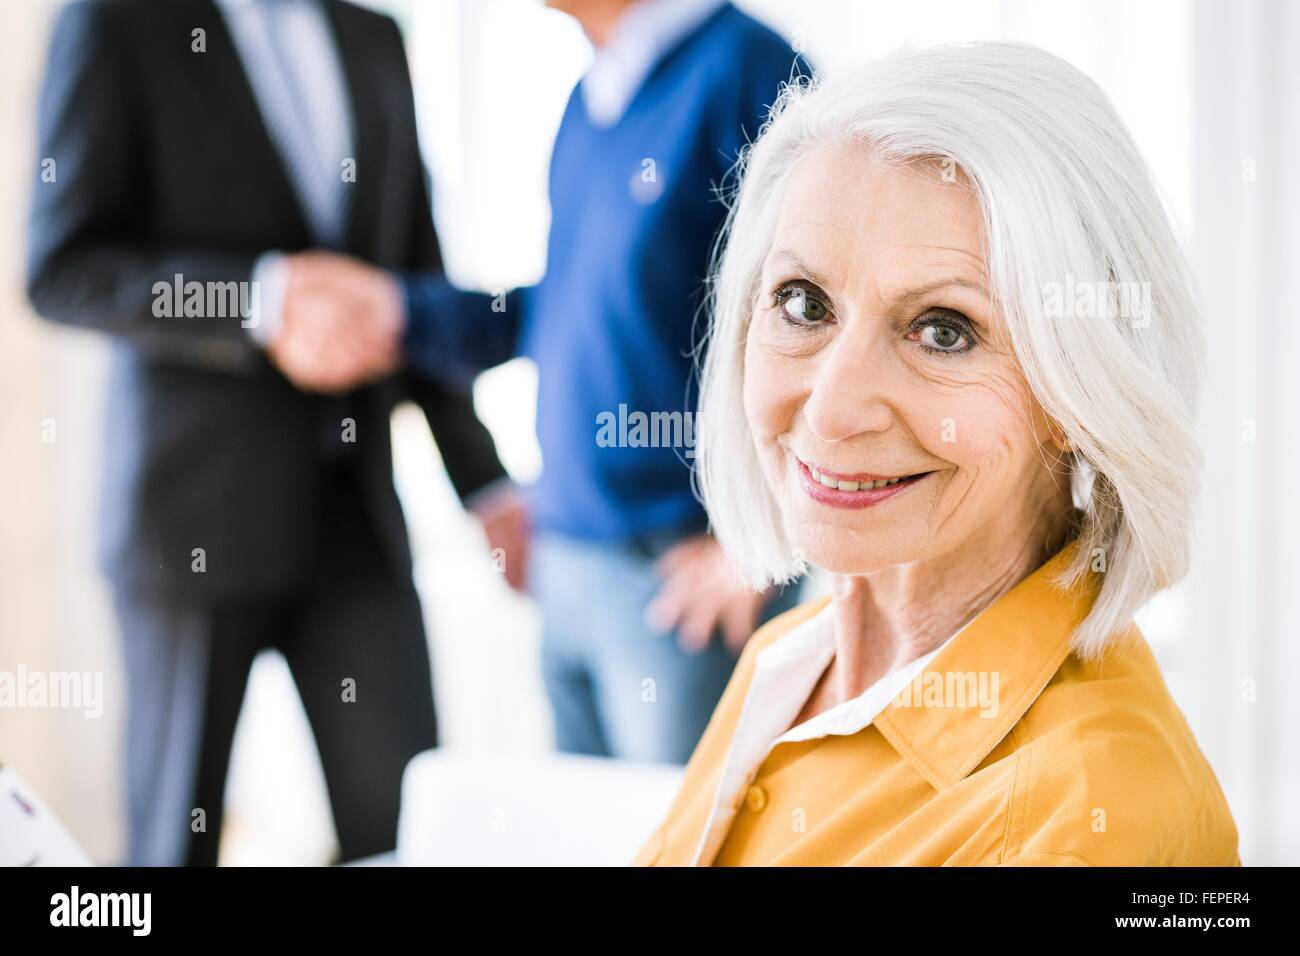 Senior woman in business meeting looking over shoulder at camera smiling - Stock Image